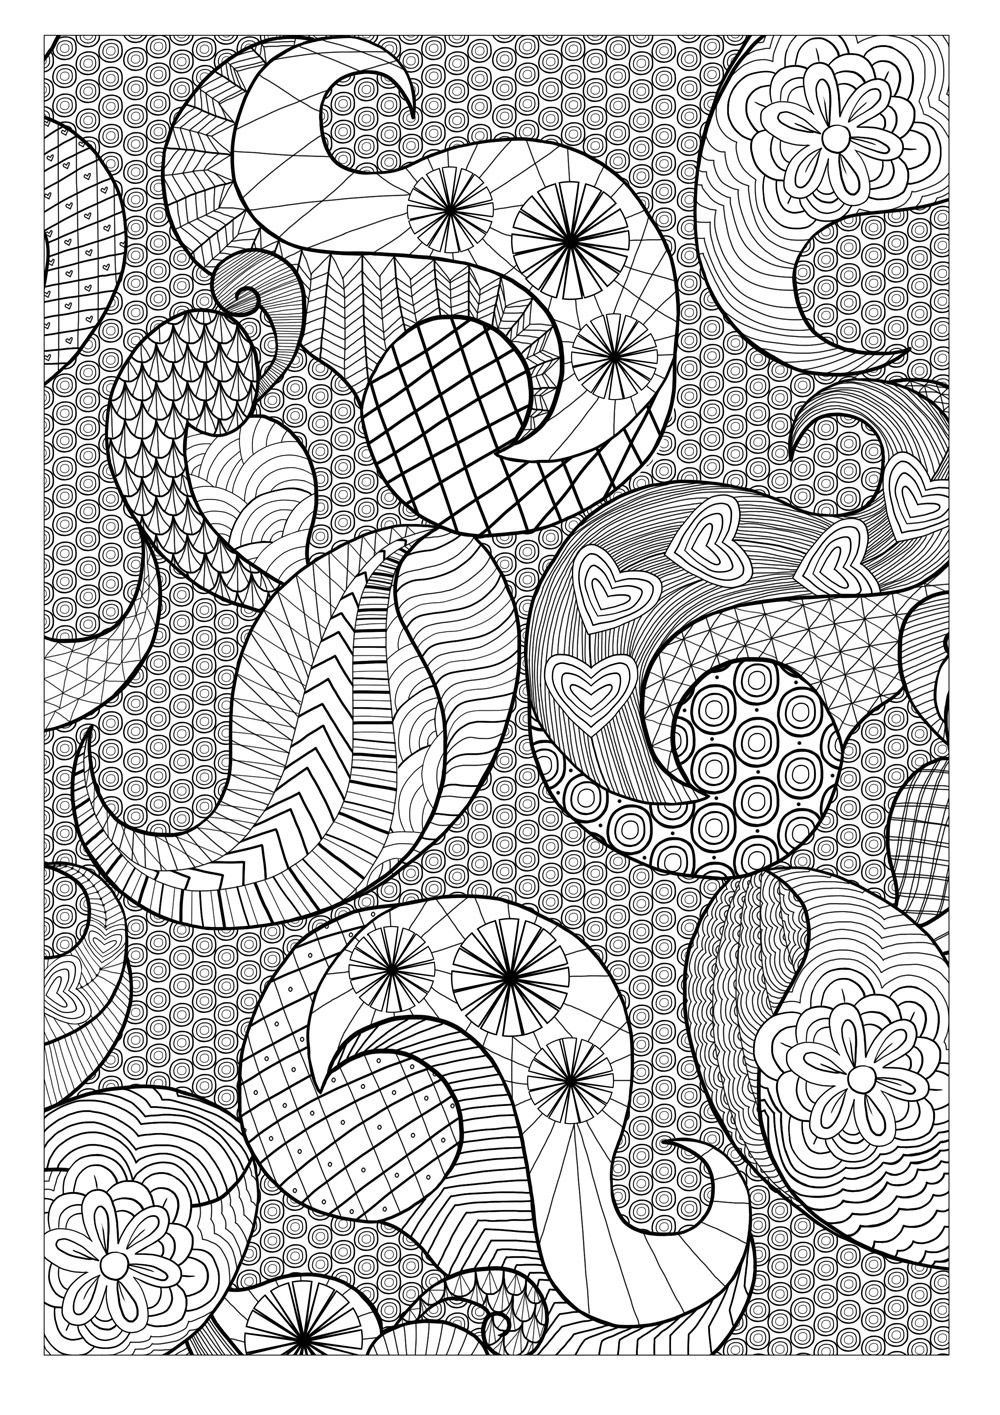 Creative Colouring For Grown Ups 60s Patterns Coloring Pages